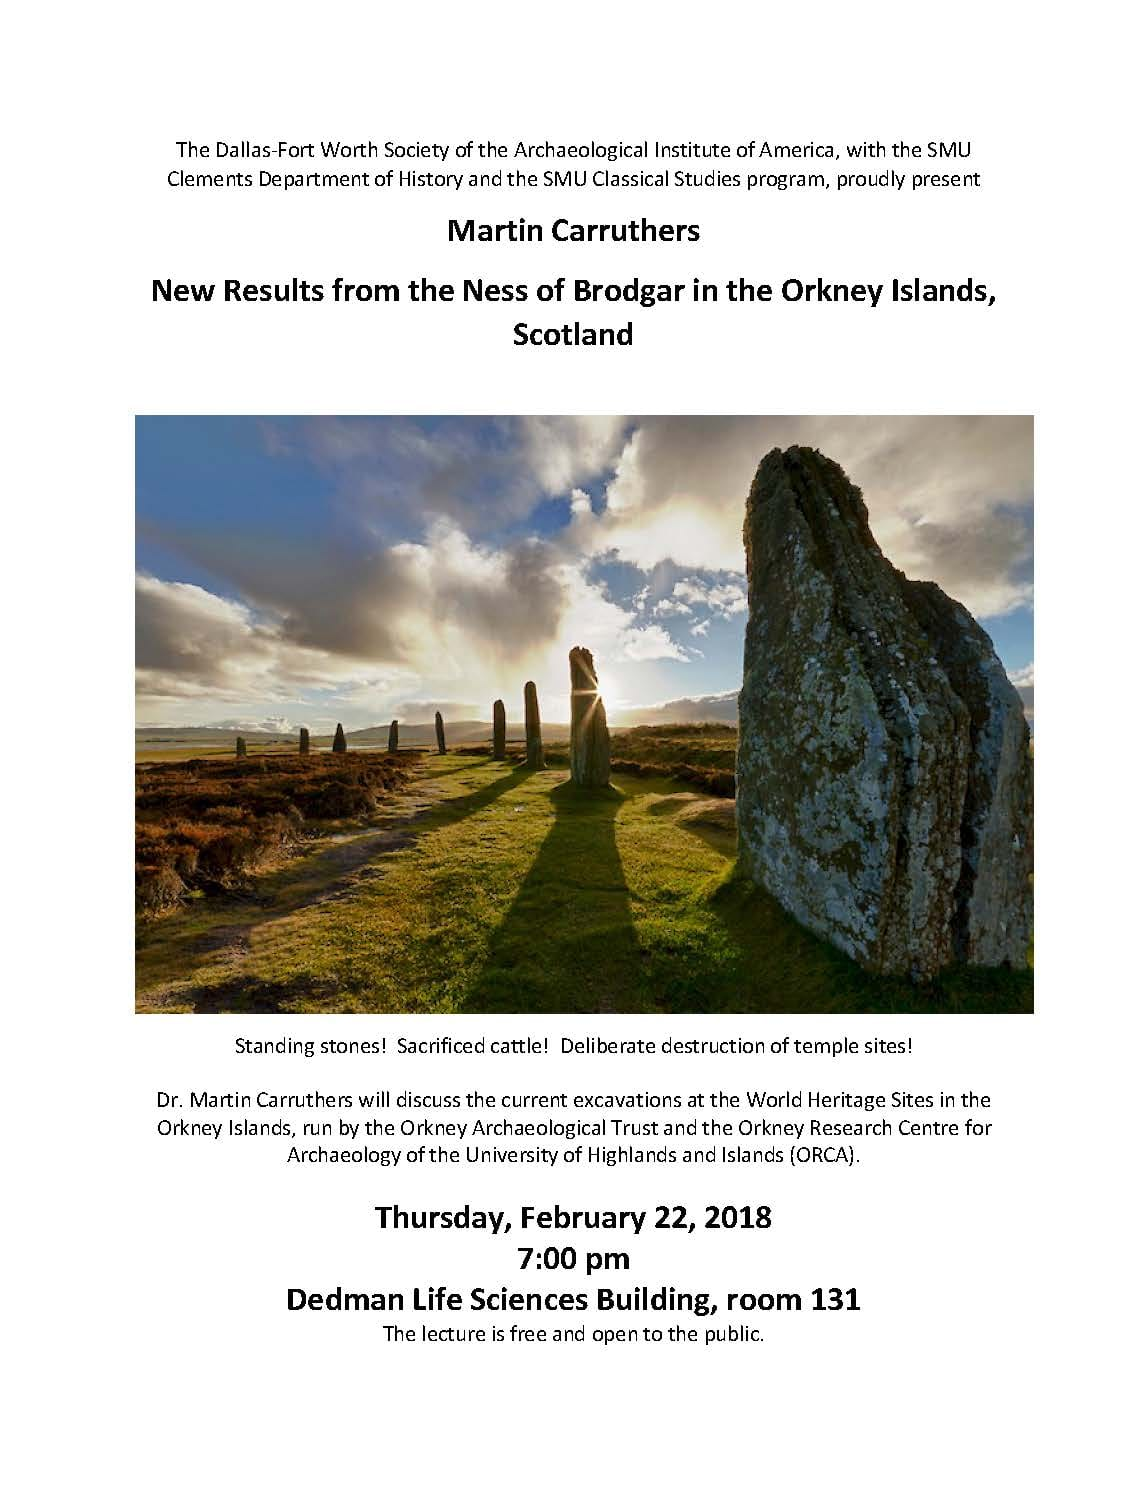 Event Feb 22 Before Stonehenge New Results Form The Ness Of